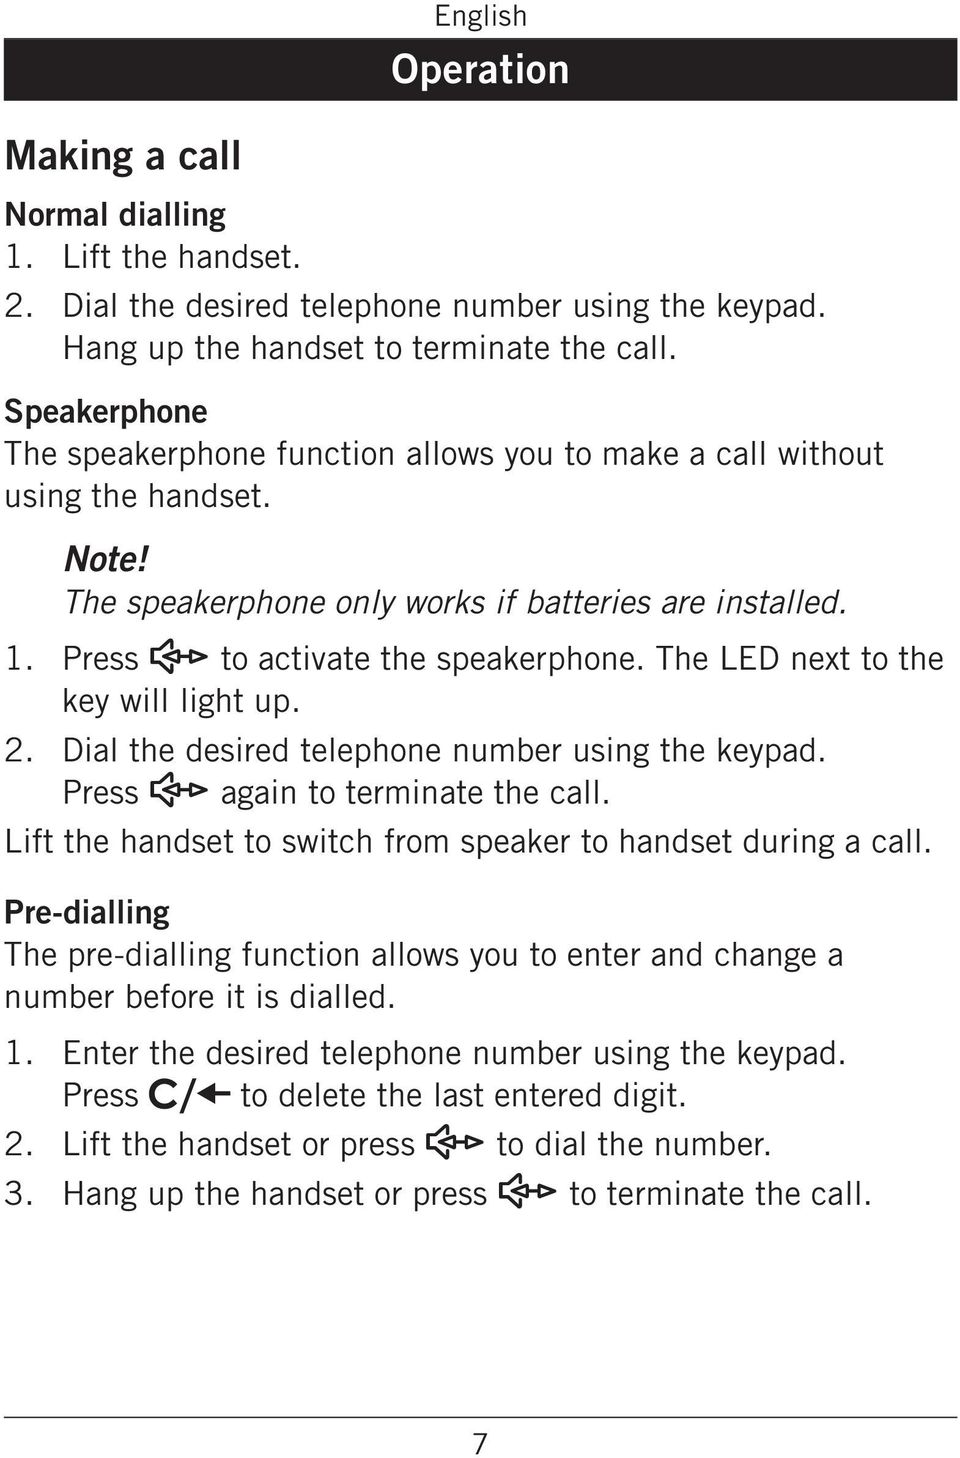 The speakerphone only works if batteries are installed Press s to activate the speakerphone The LED next to the key will light up Dial the desired telephone number using the keypad Press s again to